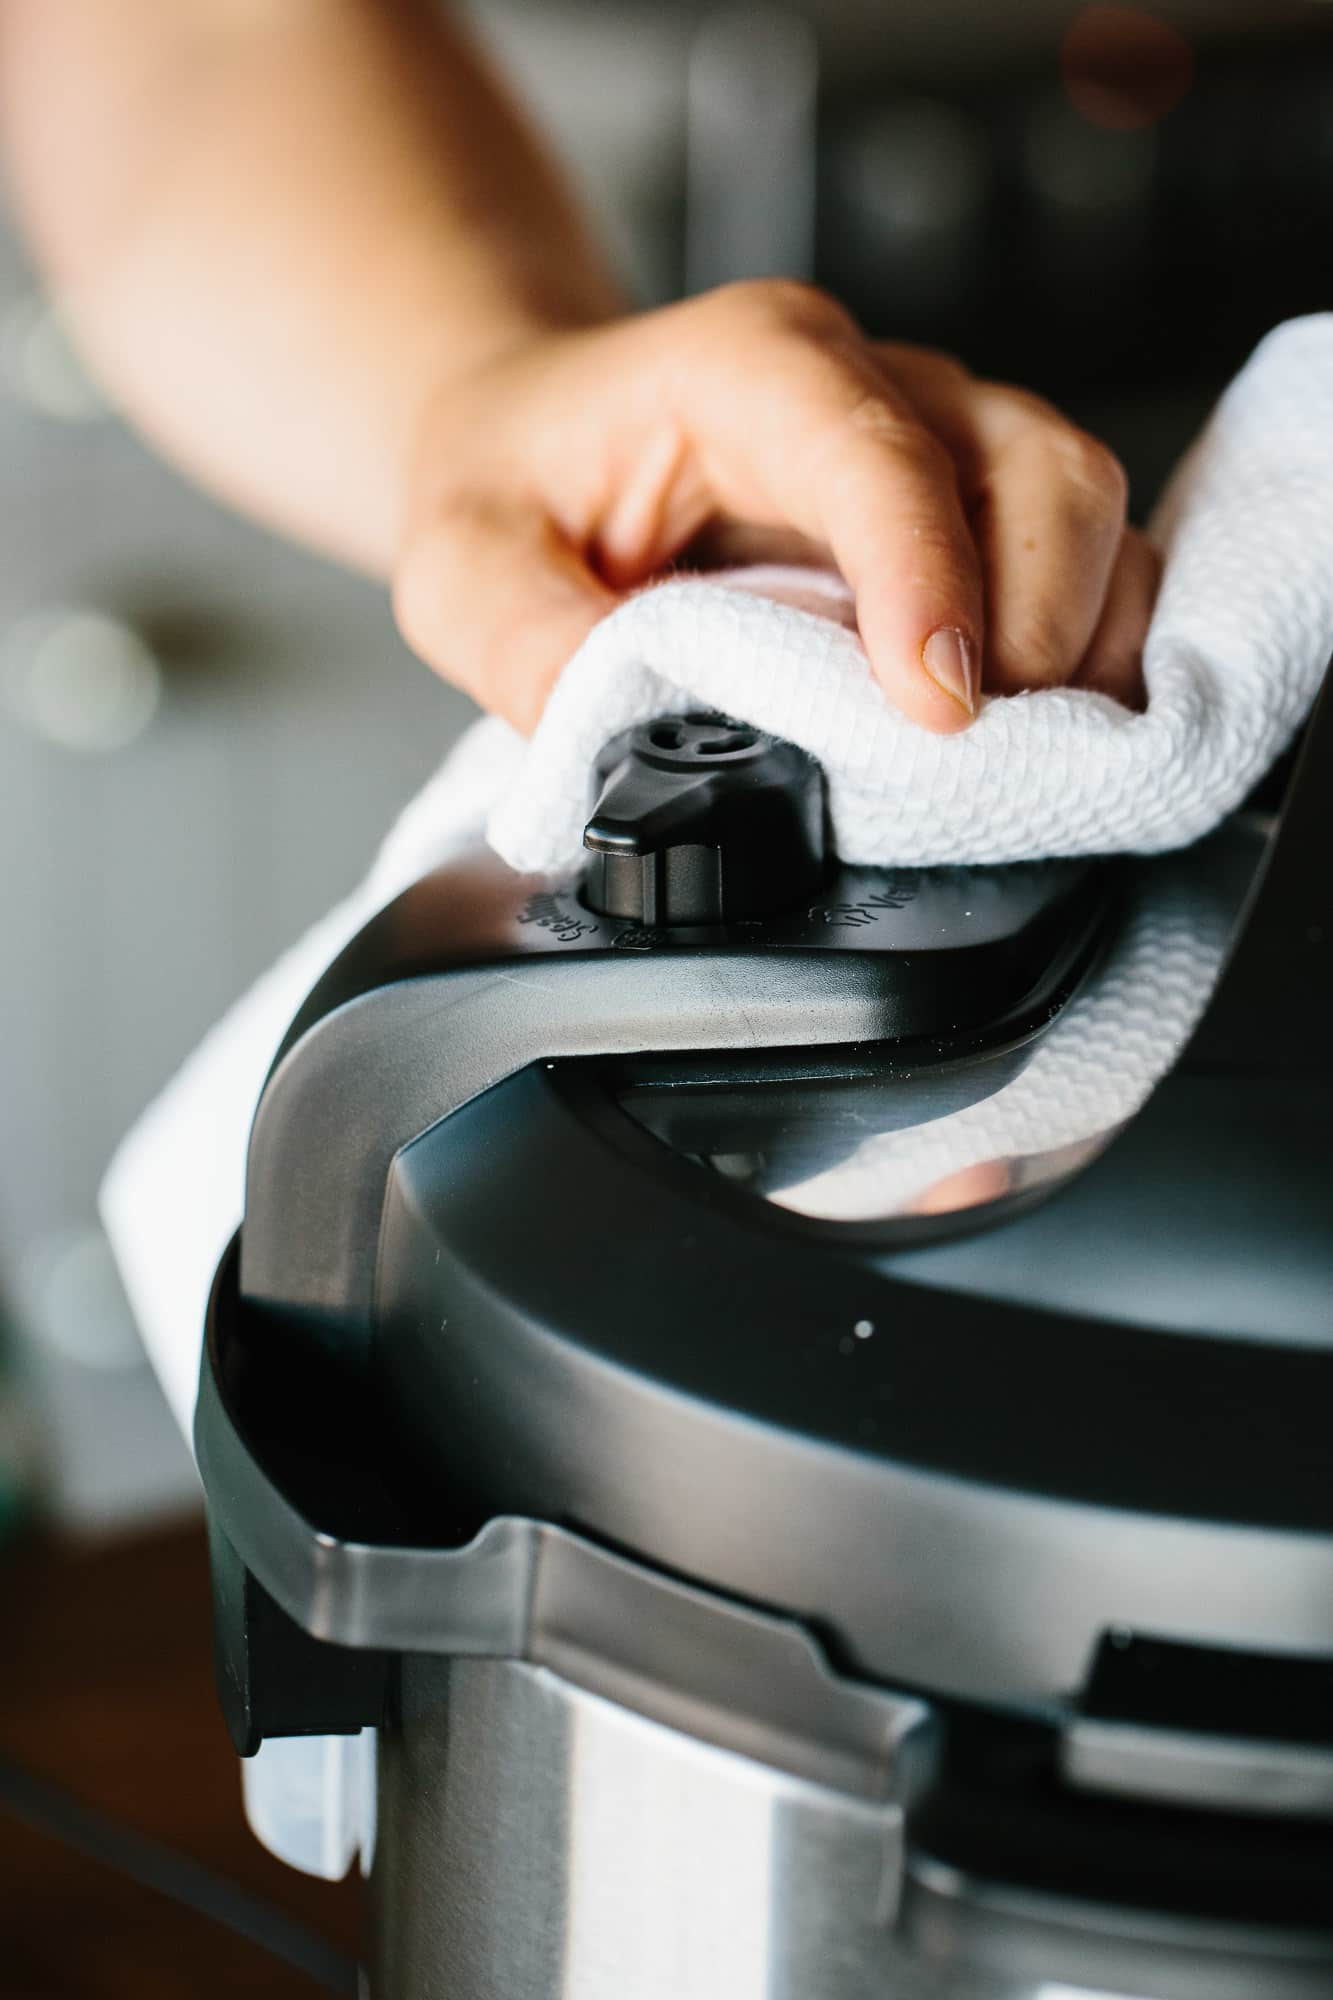 rival 6 cup rice cooker instructions